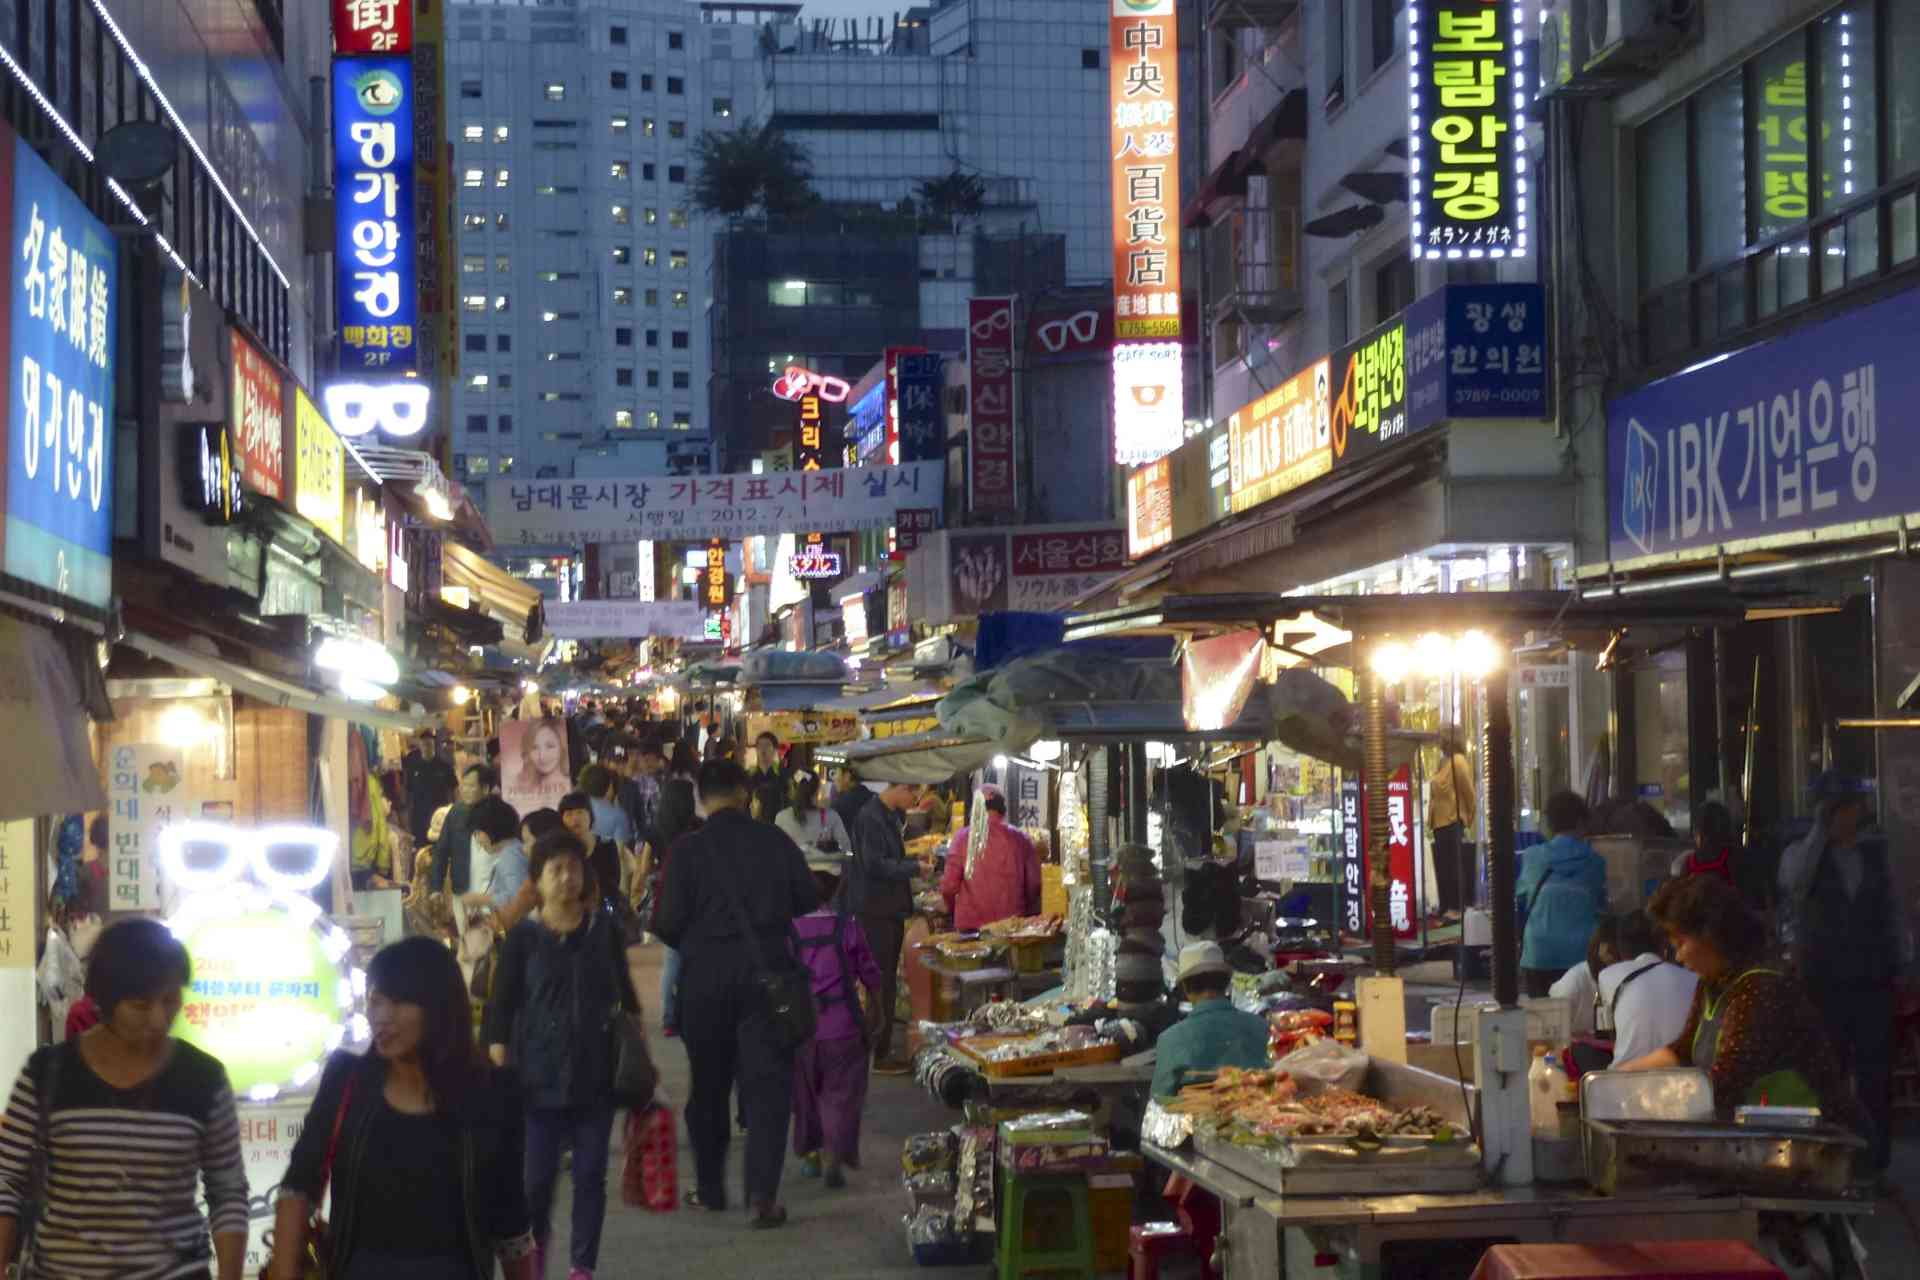 Seoul at night, by Reiko Hosokawa